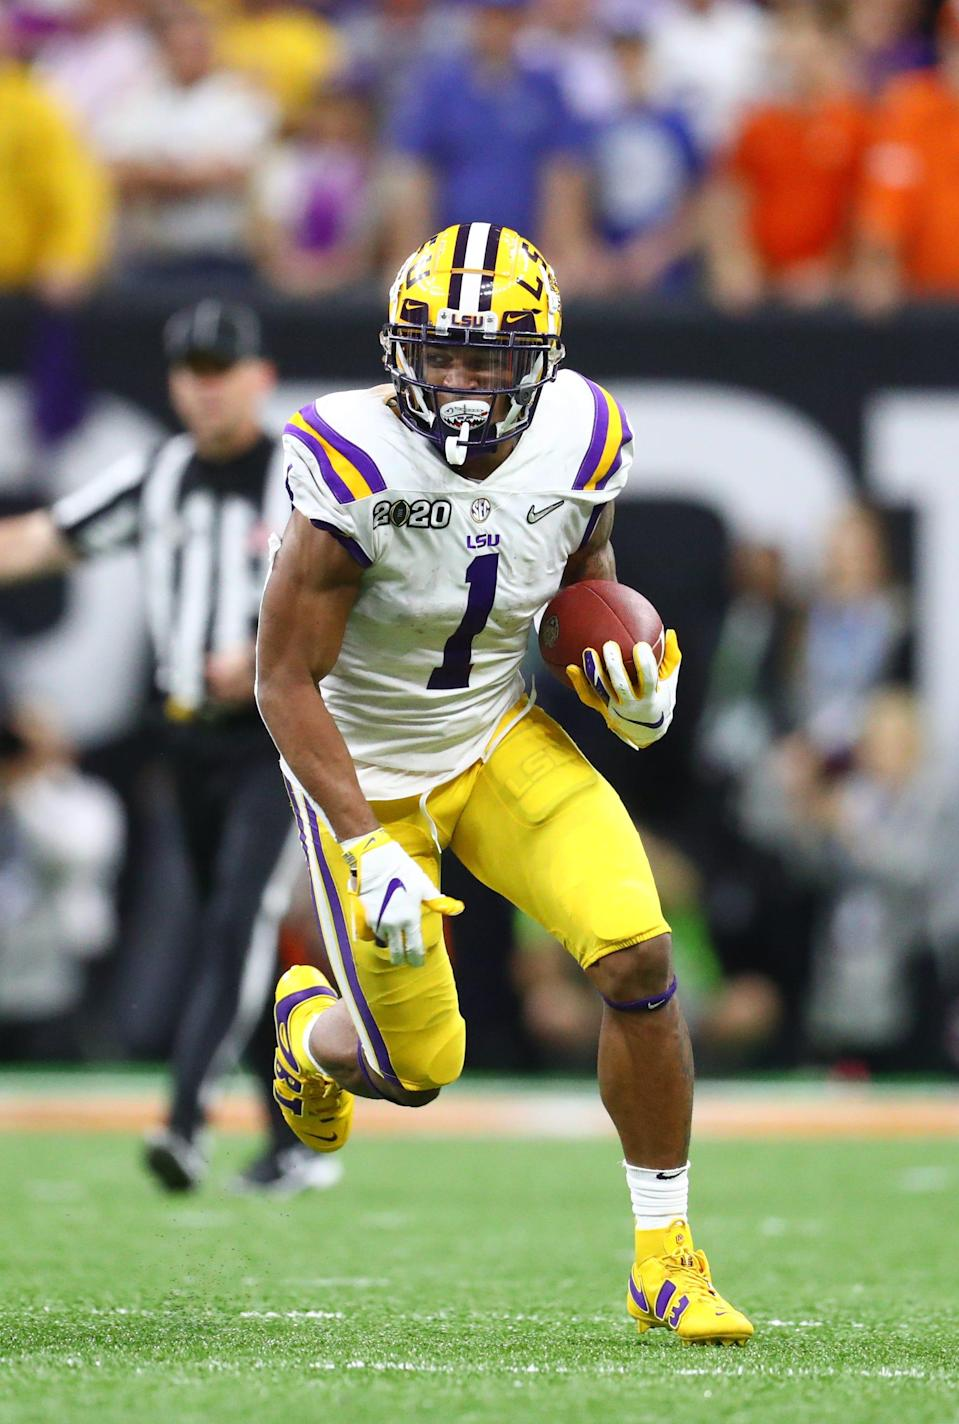 LSU receiver Ja'Marr Chase runs with the ball against Clemson in the College Football Playoff national championship game Jan. 13, 2020 in New Orleans, Louisiana.